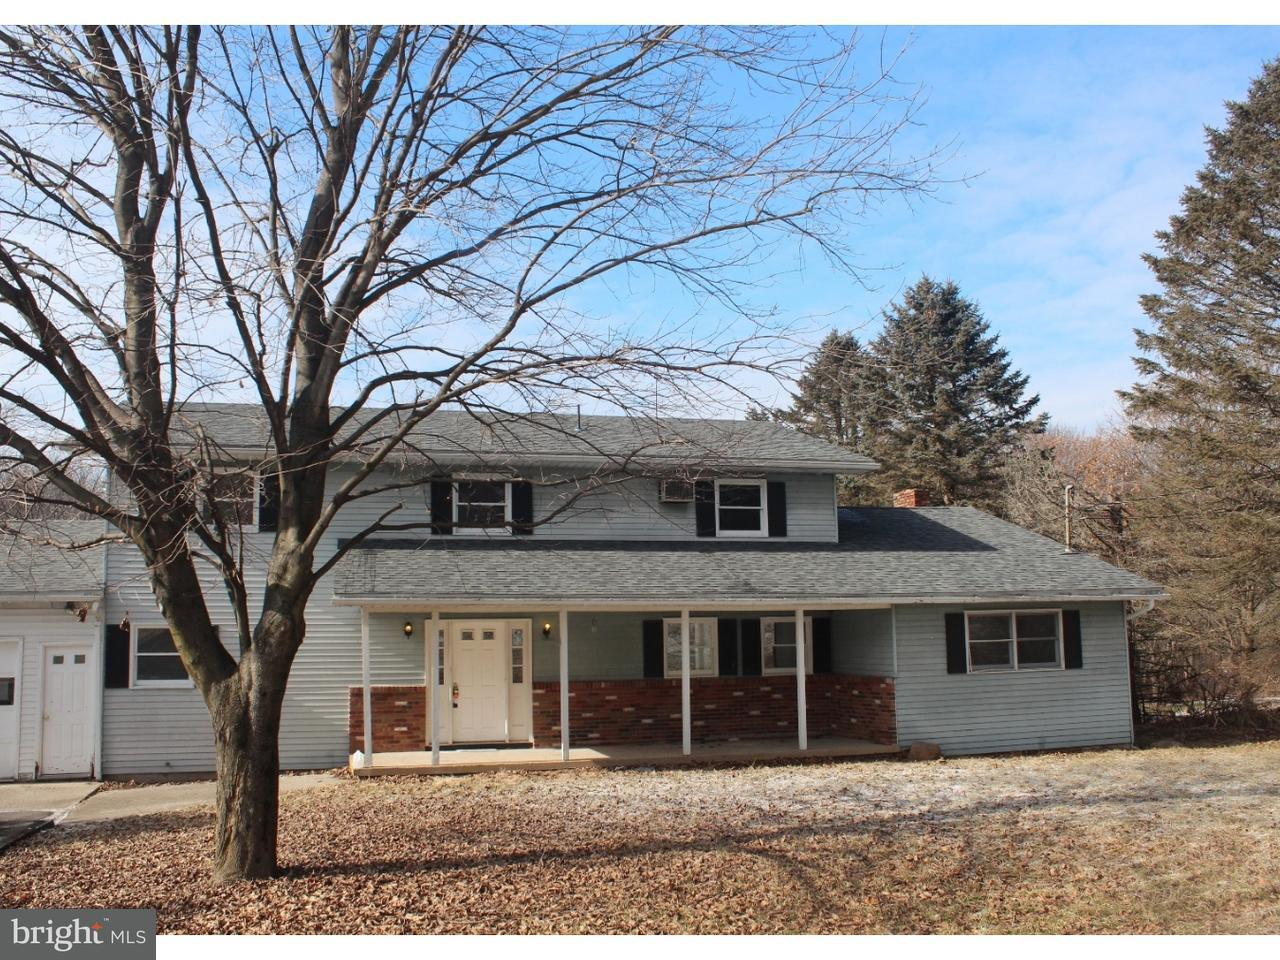 Single Family Home for Sale at 1301 BUNNY Lane Brodheadsville, Pennsylvania 18322 United States